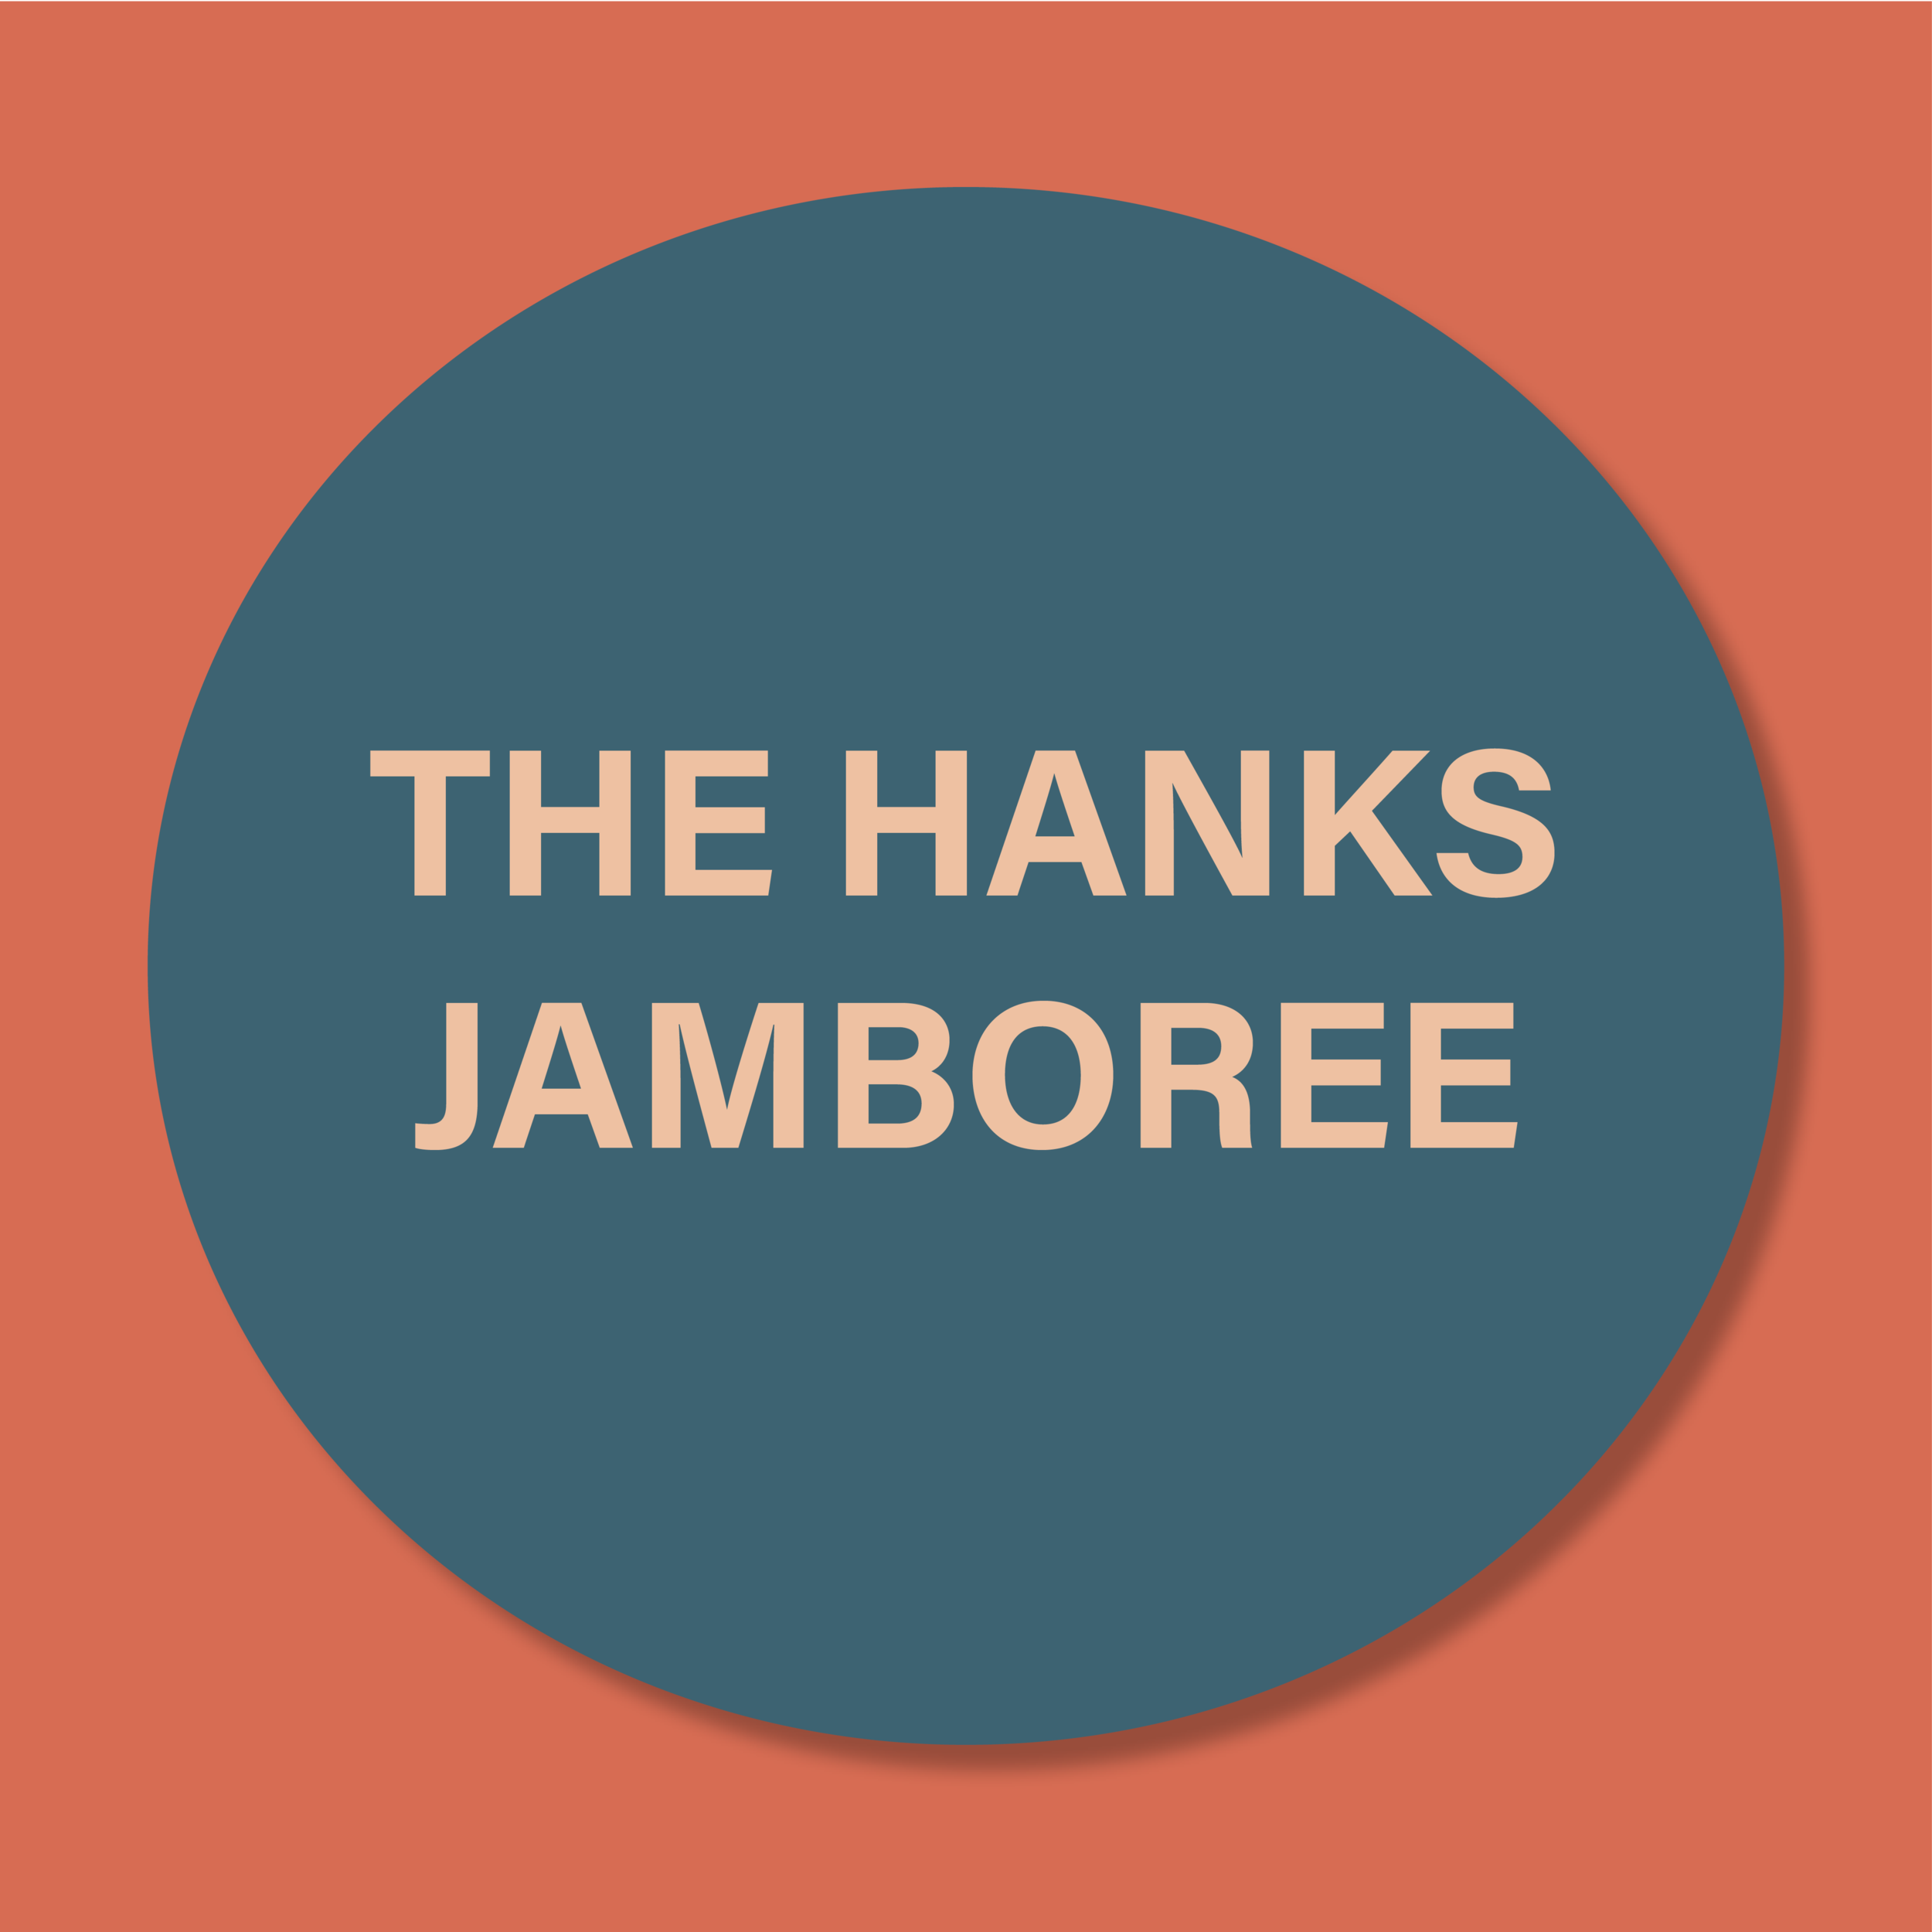 the hanks jamboree.png